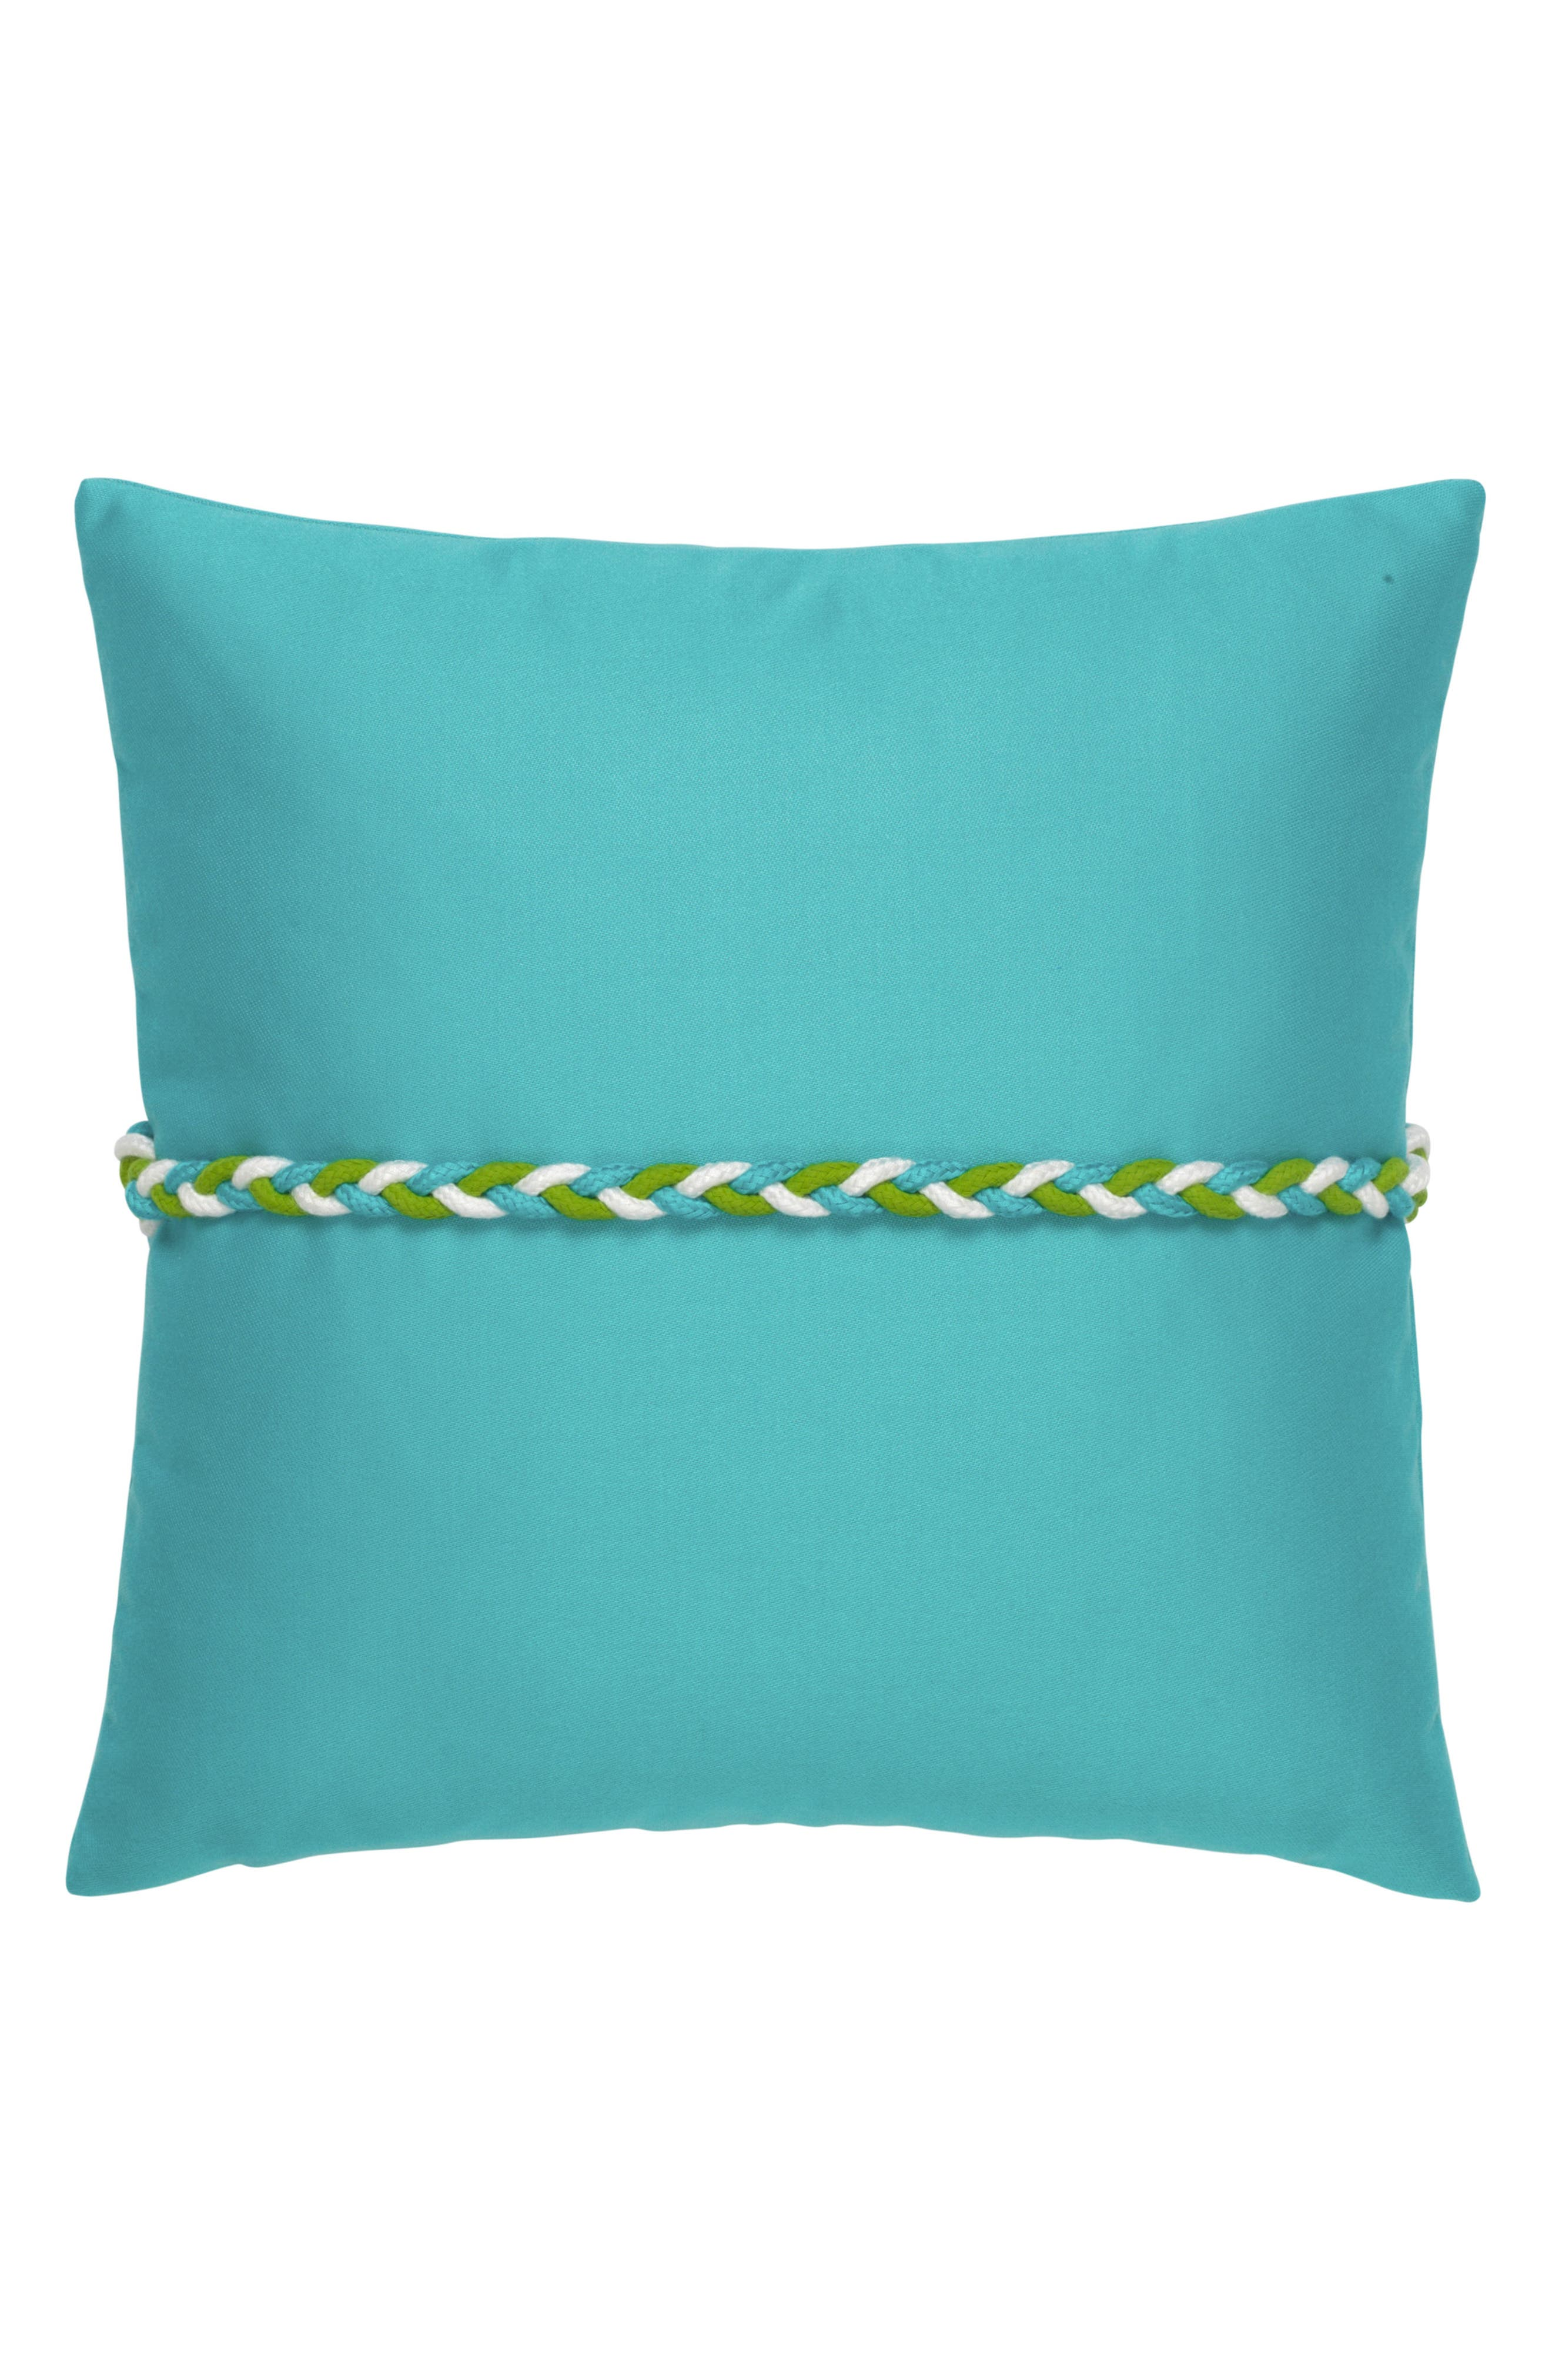 Aruba Frogs Clasp Indoor/Outdoor Accent Pillow,                             Alternate thumbnail 2, color,                             400